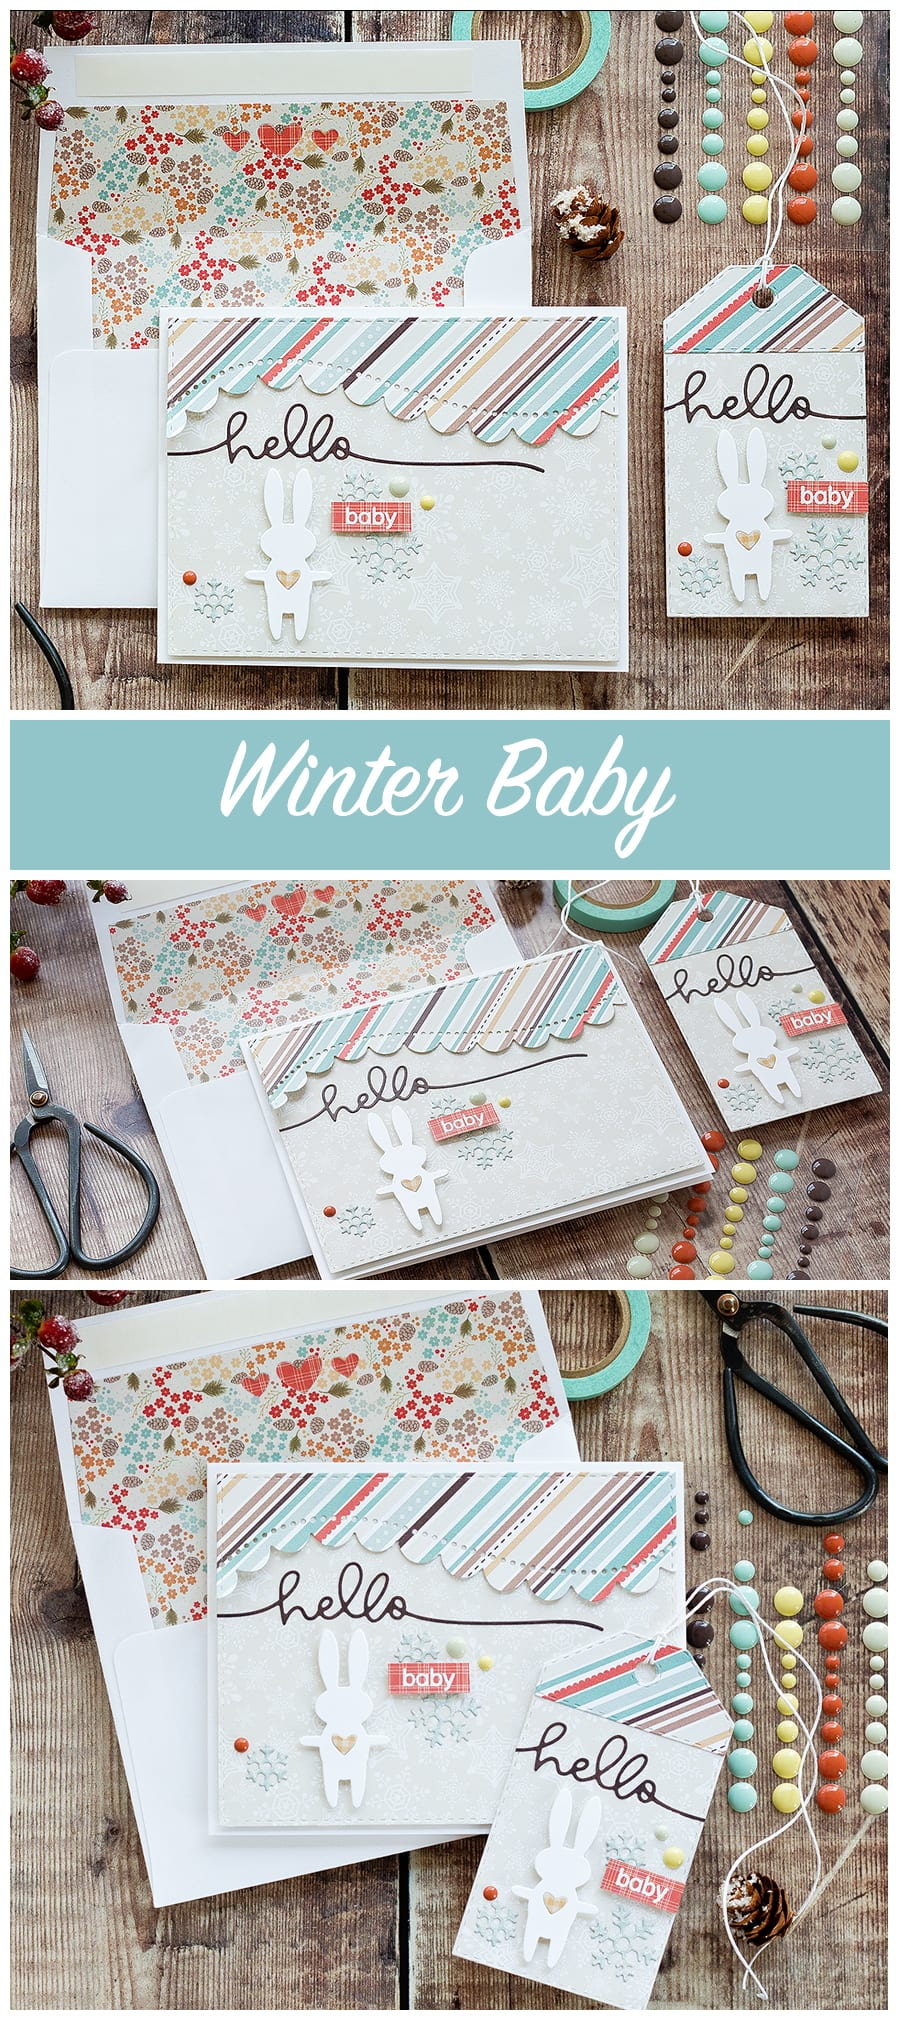 Winter baby card from Debby Hughes. Find out more by clicking on the following link: http://limedoodledesign.com/2016/12/winter-baby-diecember-blog-hop/